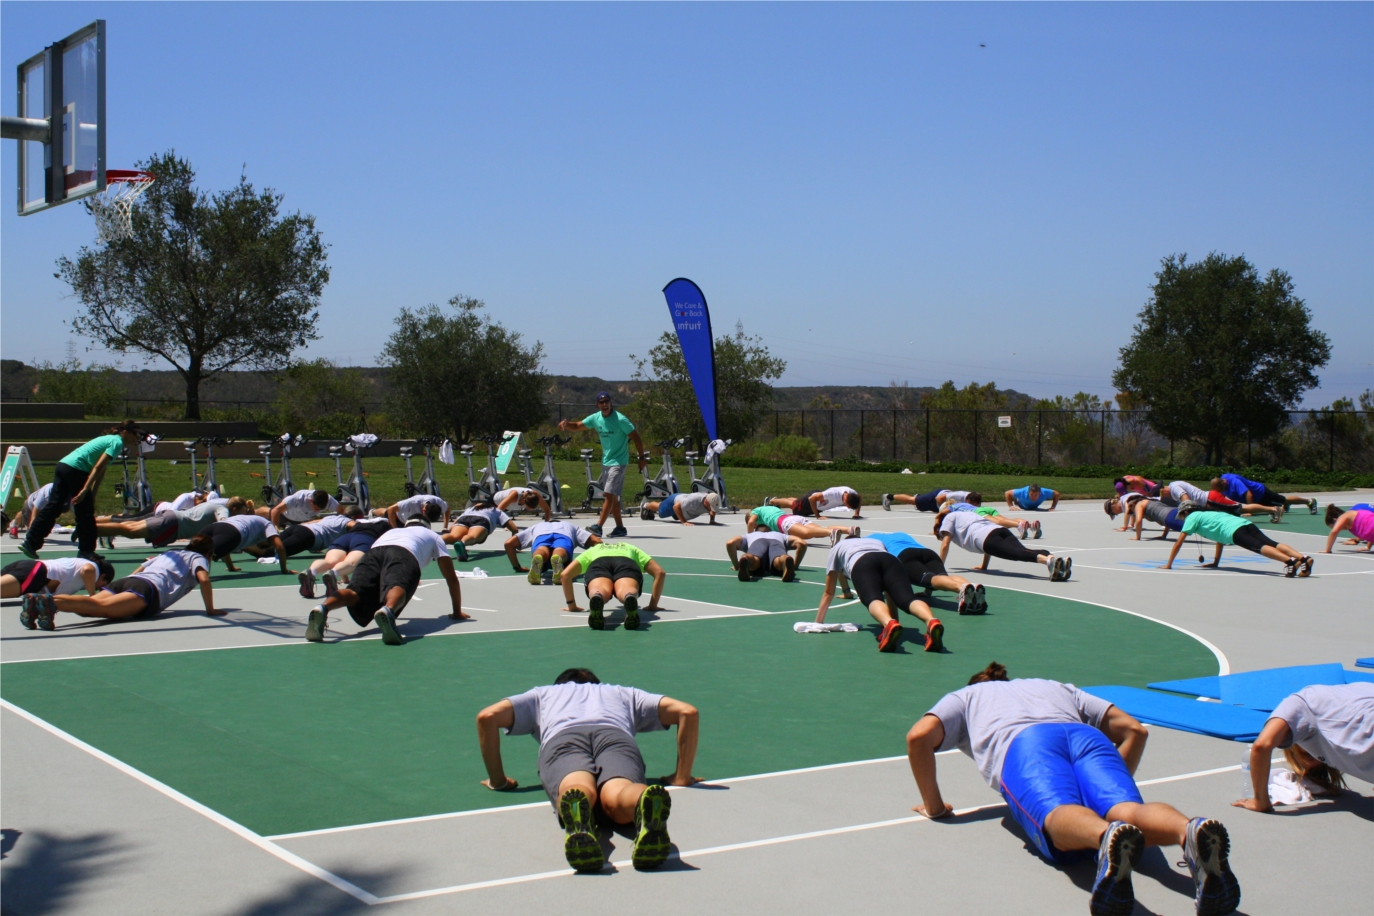 Intuit employees make it count! Employees participated in a Charity Boot Camp in August to raise funds for our community partner Adaptive Sports, which helps people with disabilities maintain physical activity. Nearly $2,000 was donated directly to the non-profit.